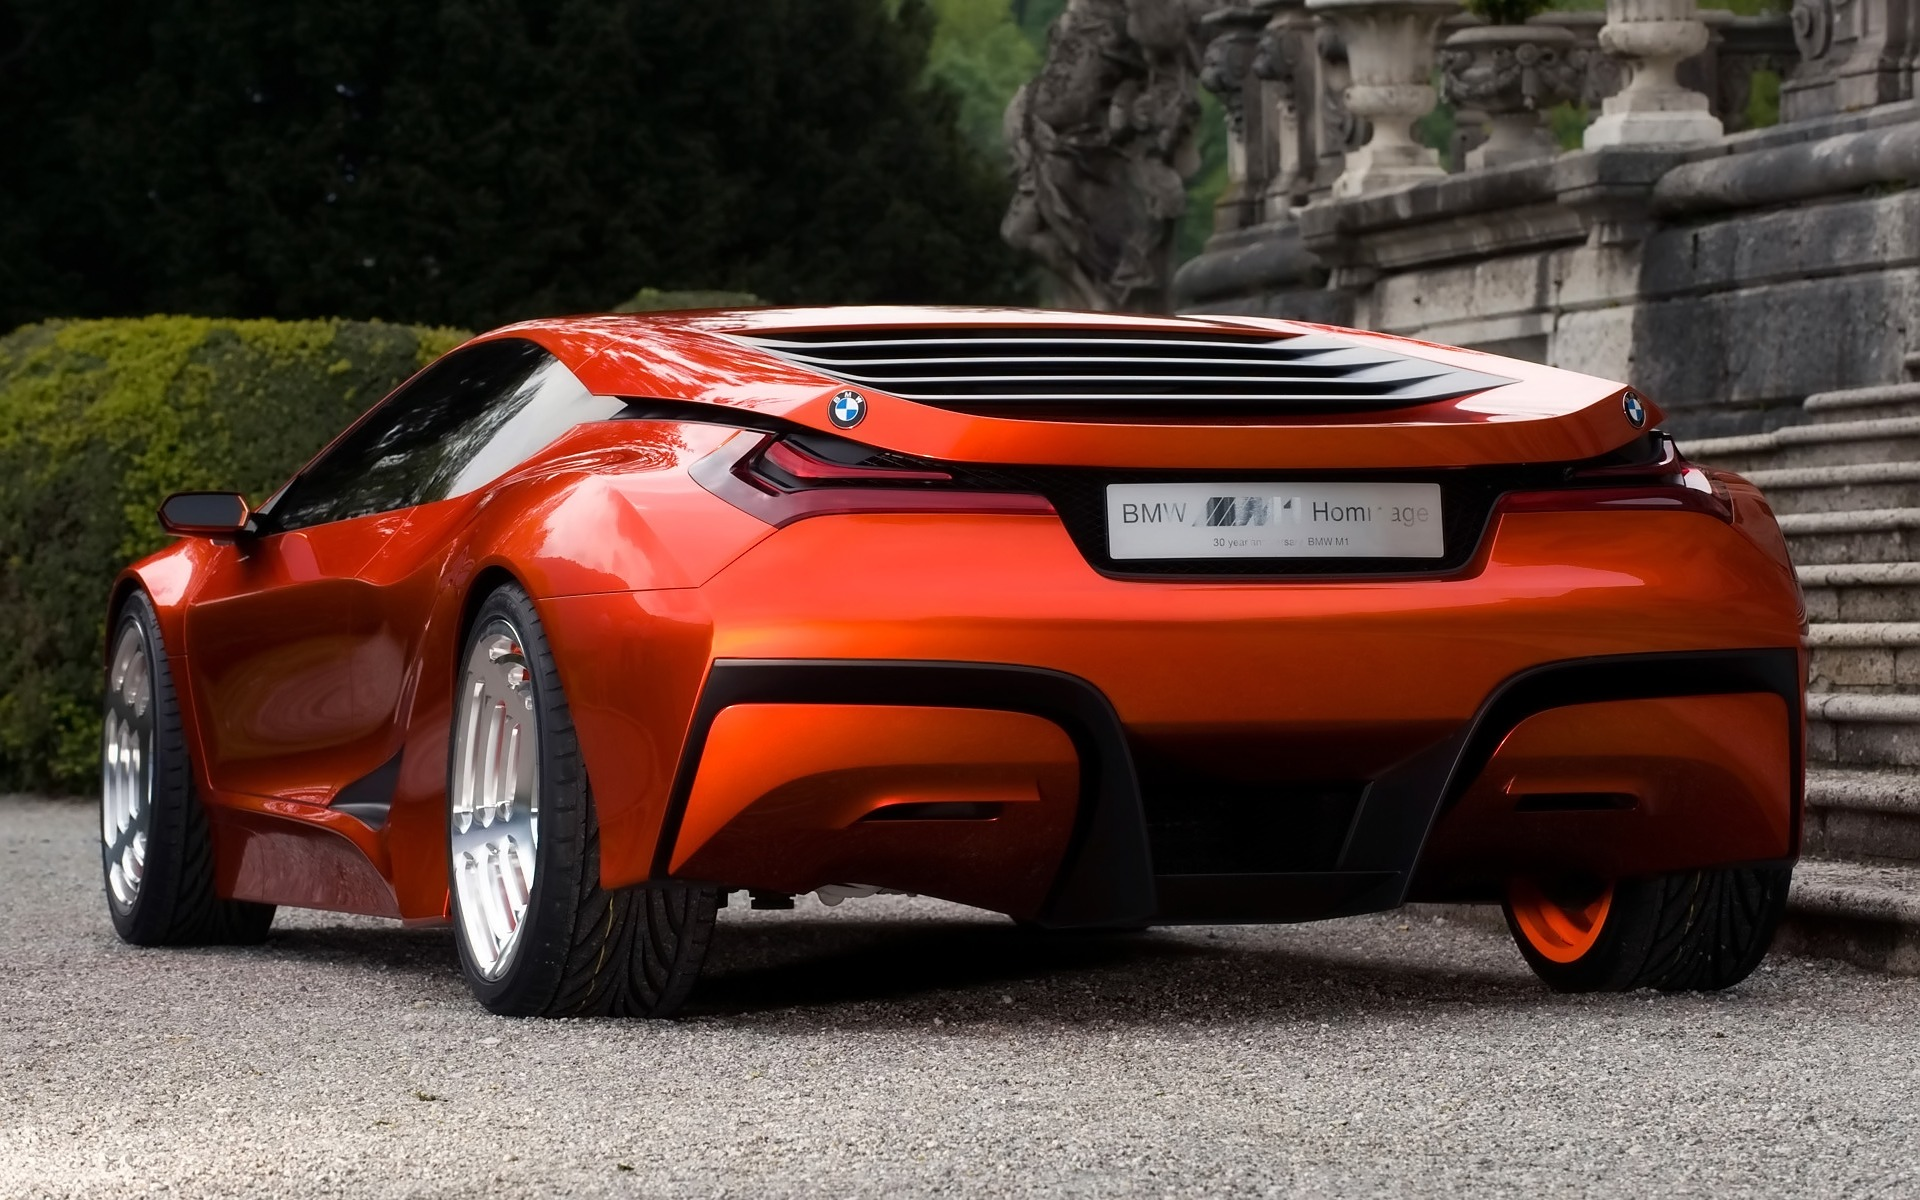 Bmw M1 Concept Wallpaper Bmw Cars Wallpapers In Jpg Format For Free